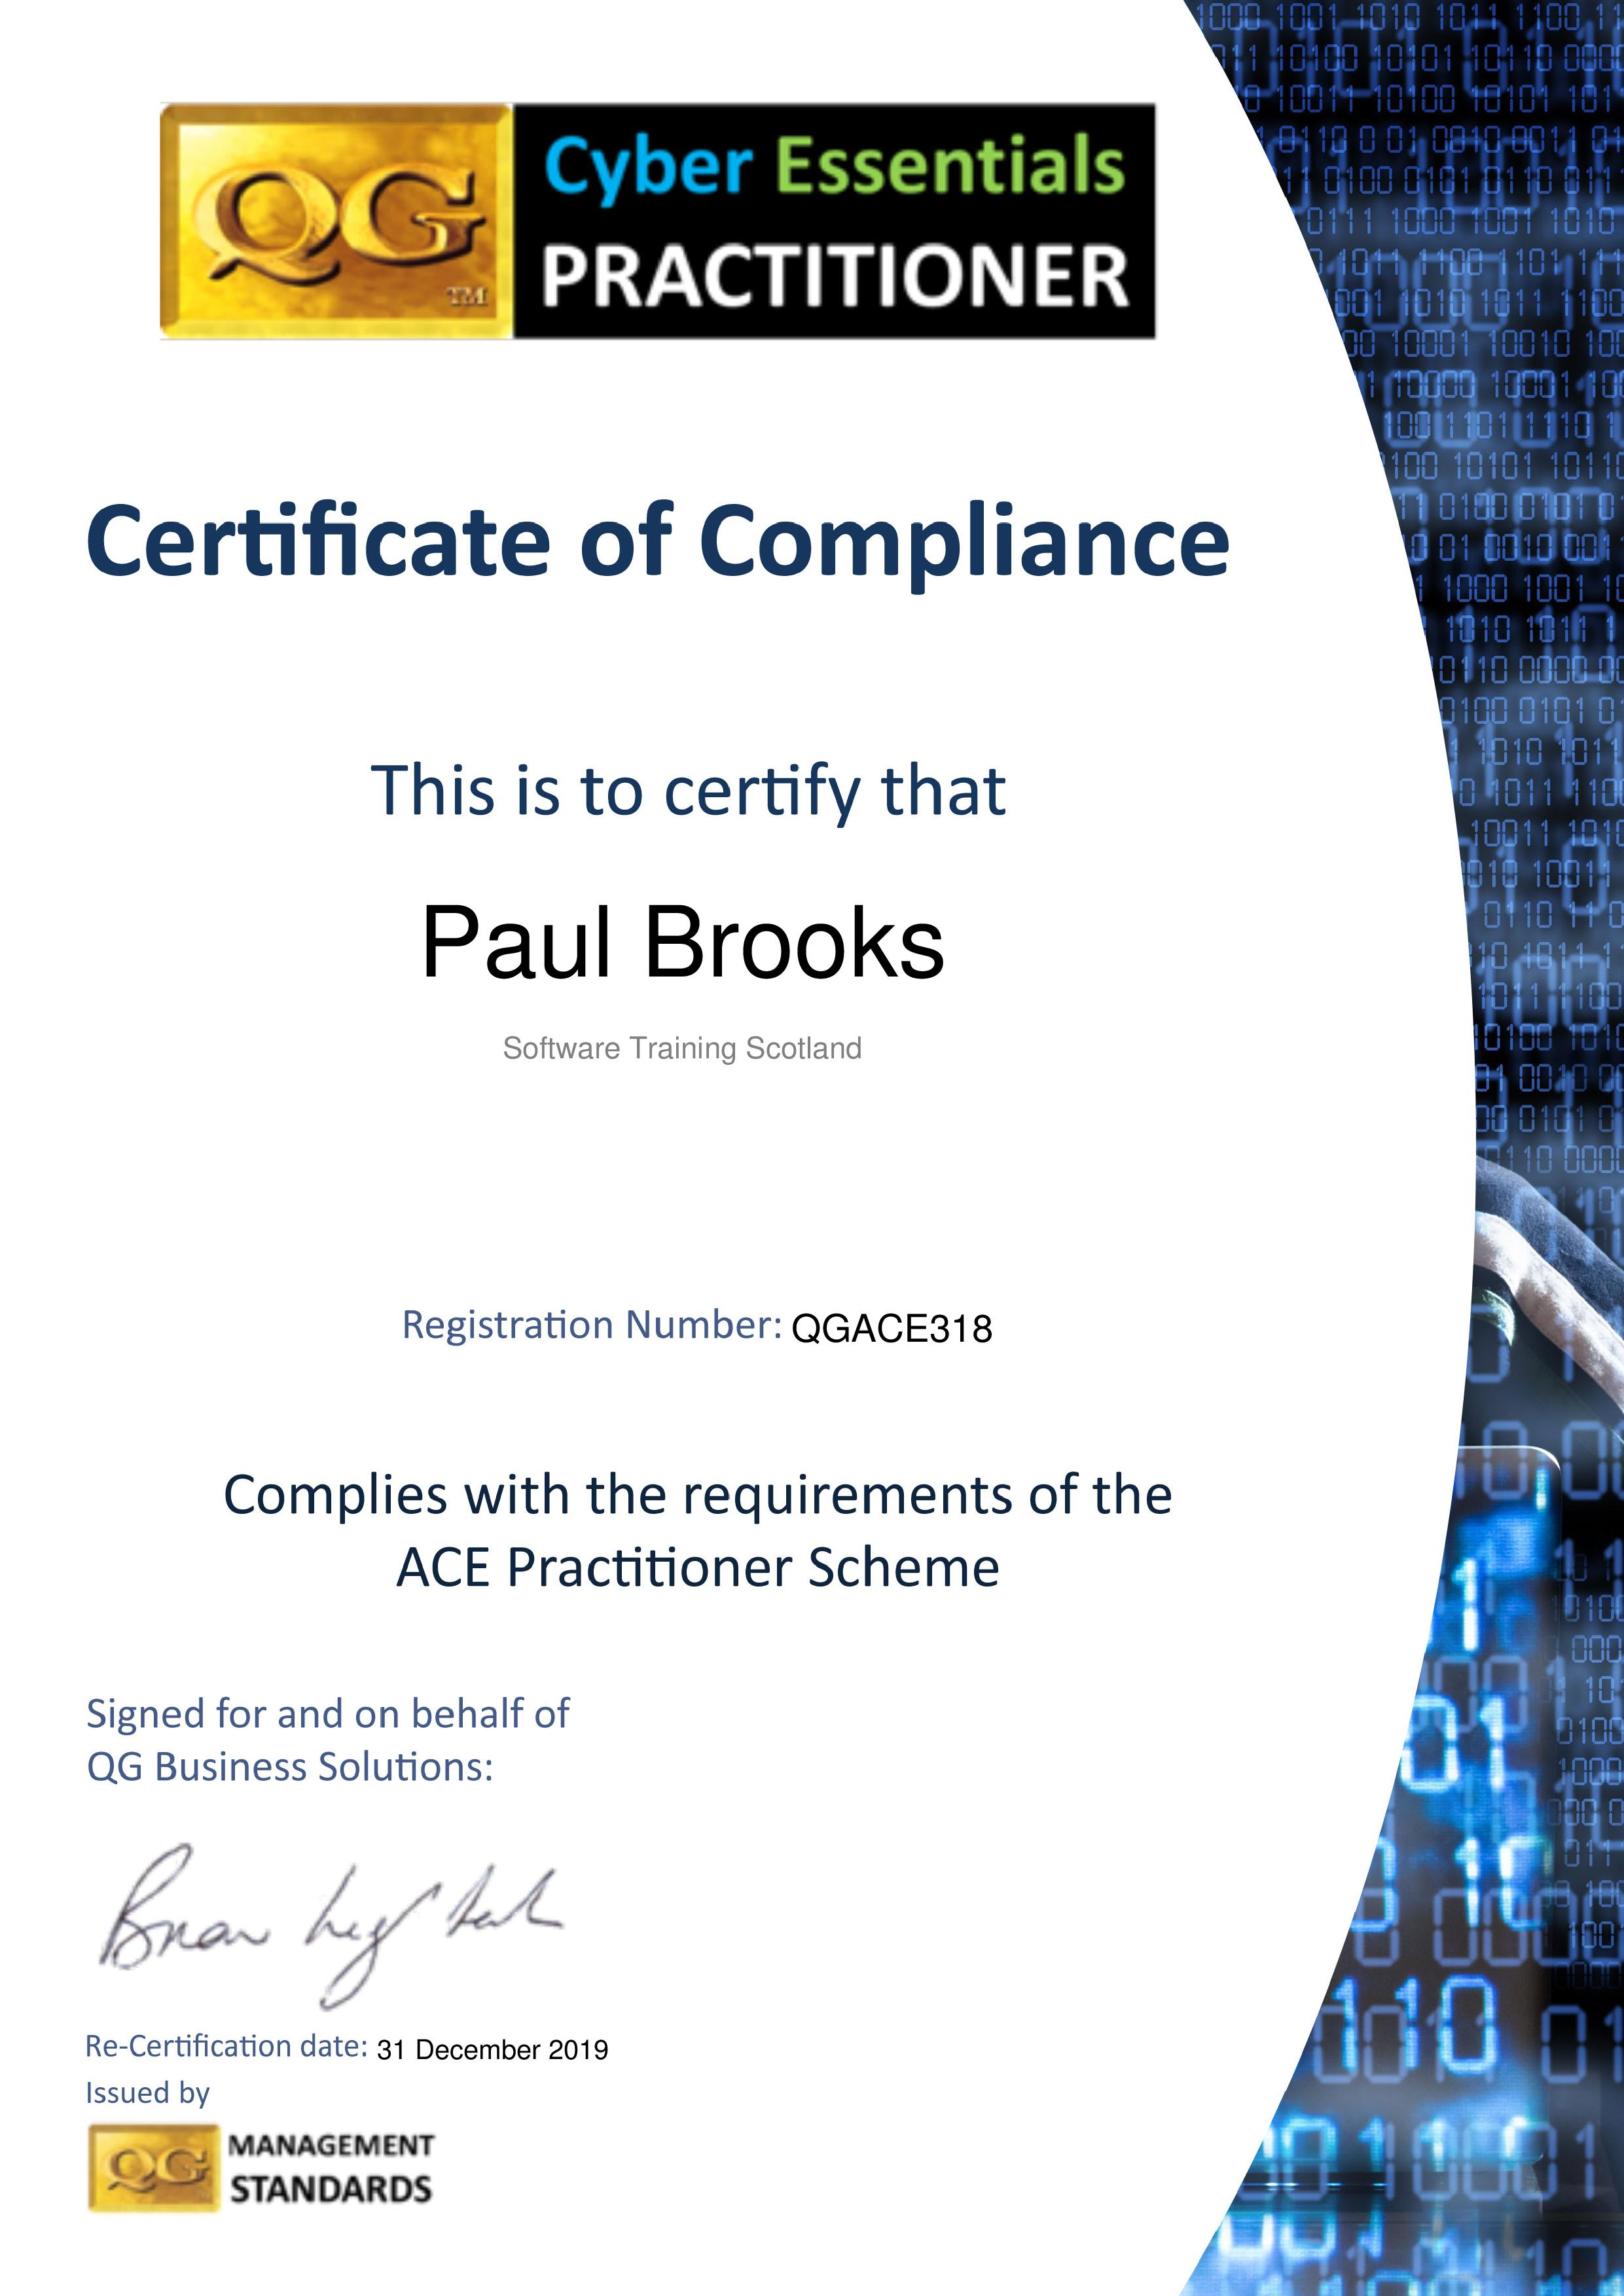 QGACE318 Software Training Scotland